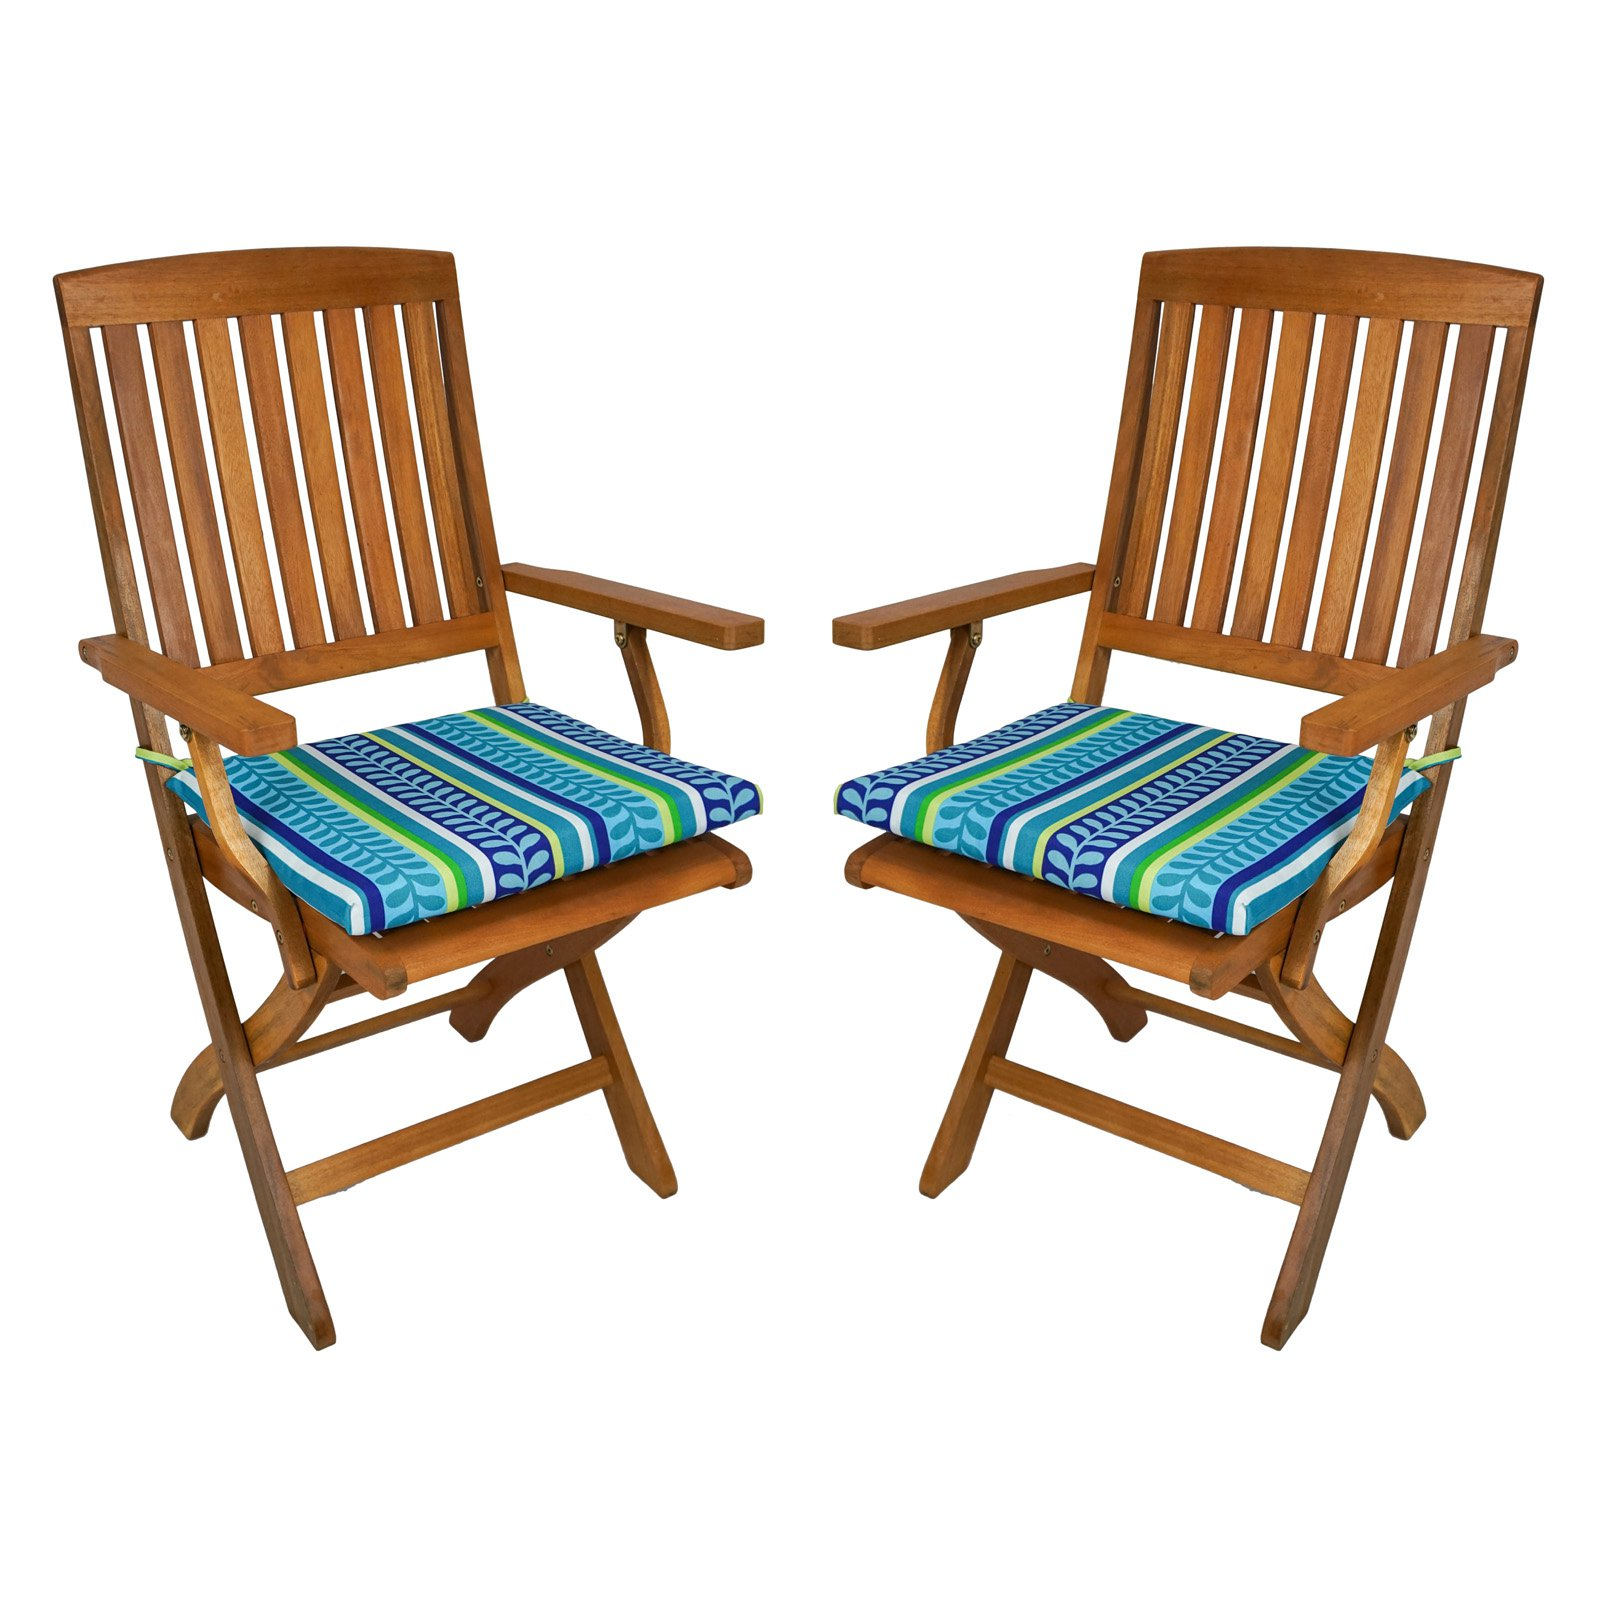 Beau Blazing Needles Outdoor Folding Chair Cushion   17.5 X 15 In.   Set Of 2